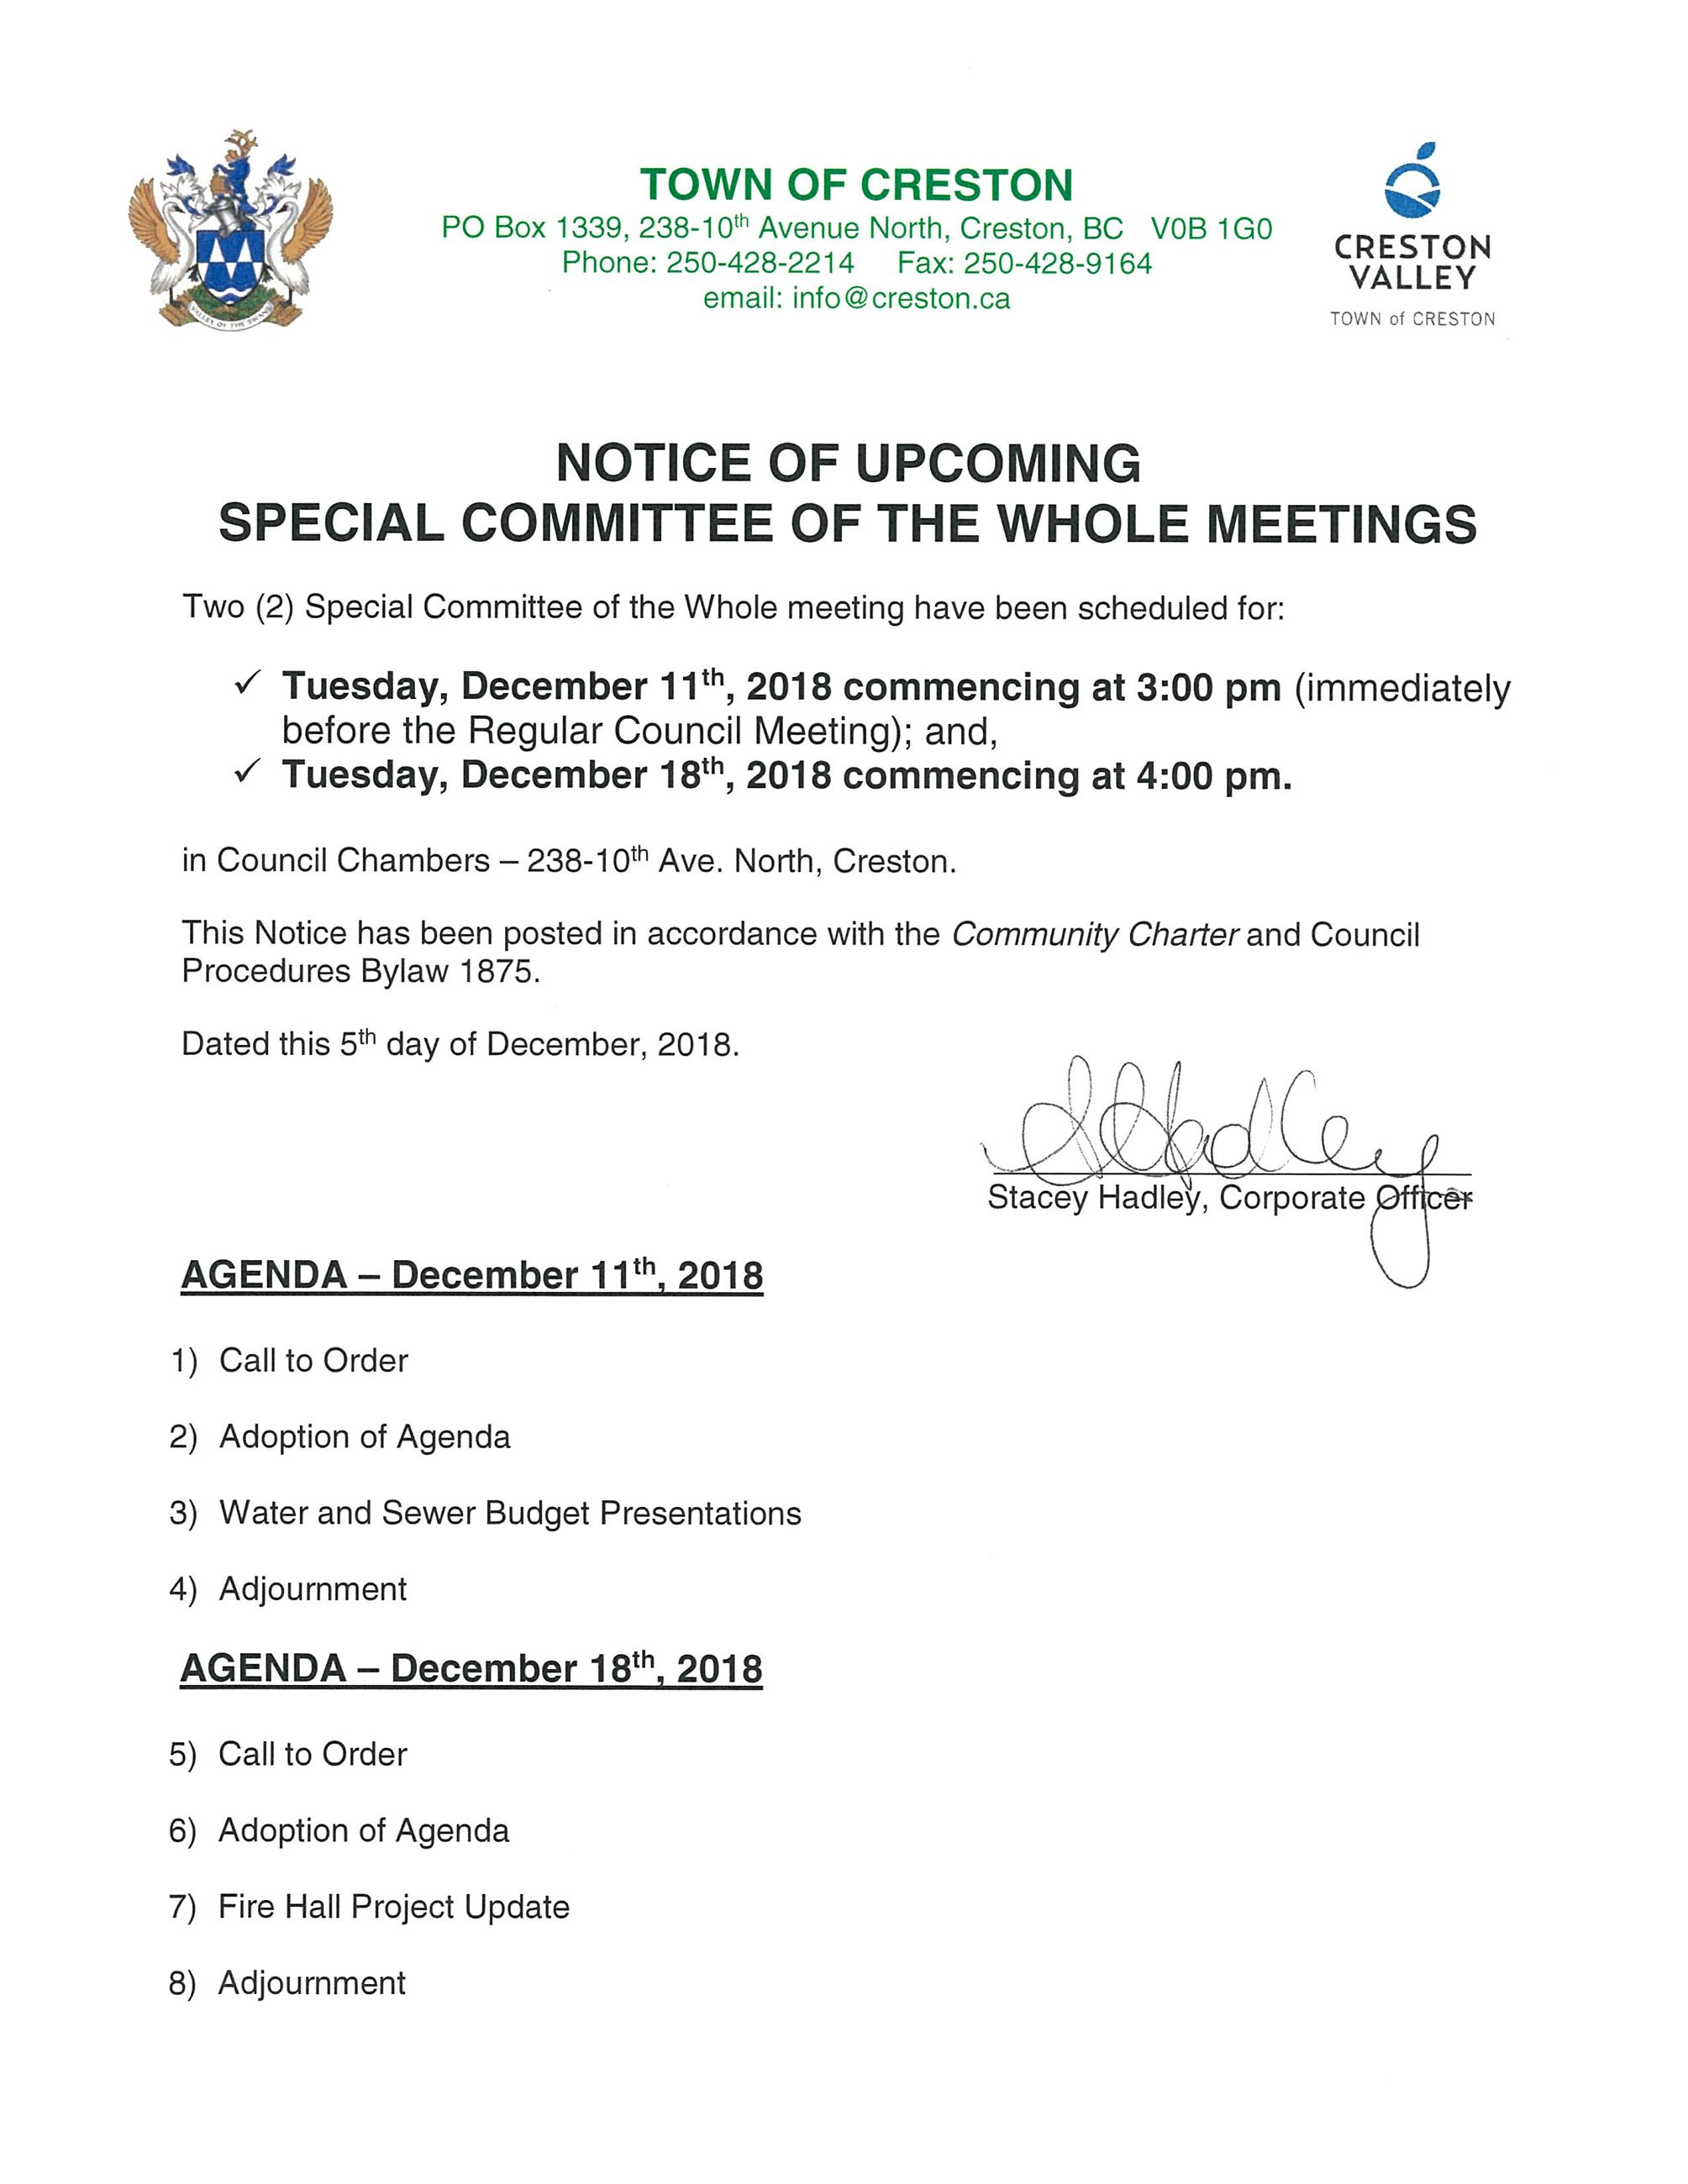 Special Meeting Notice